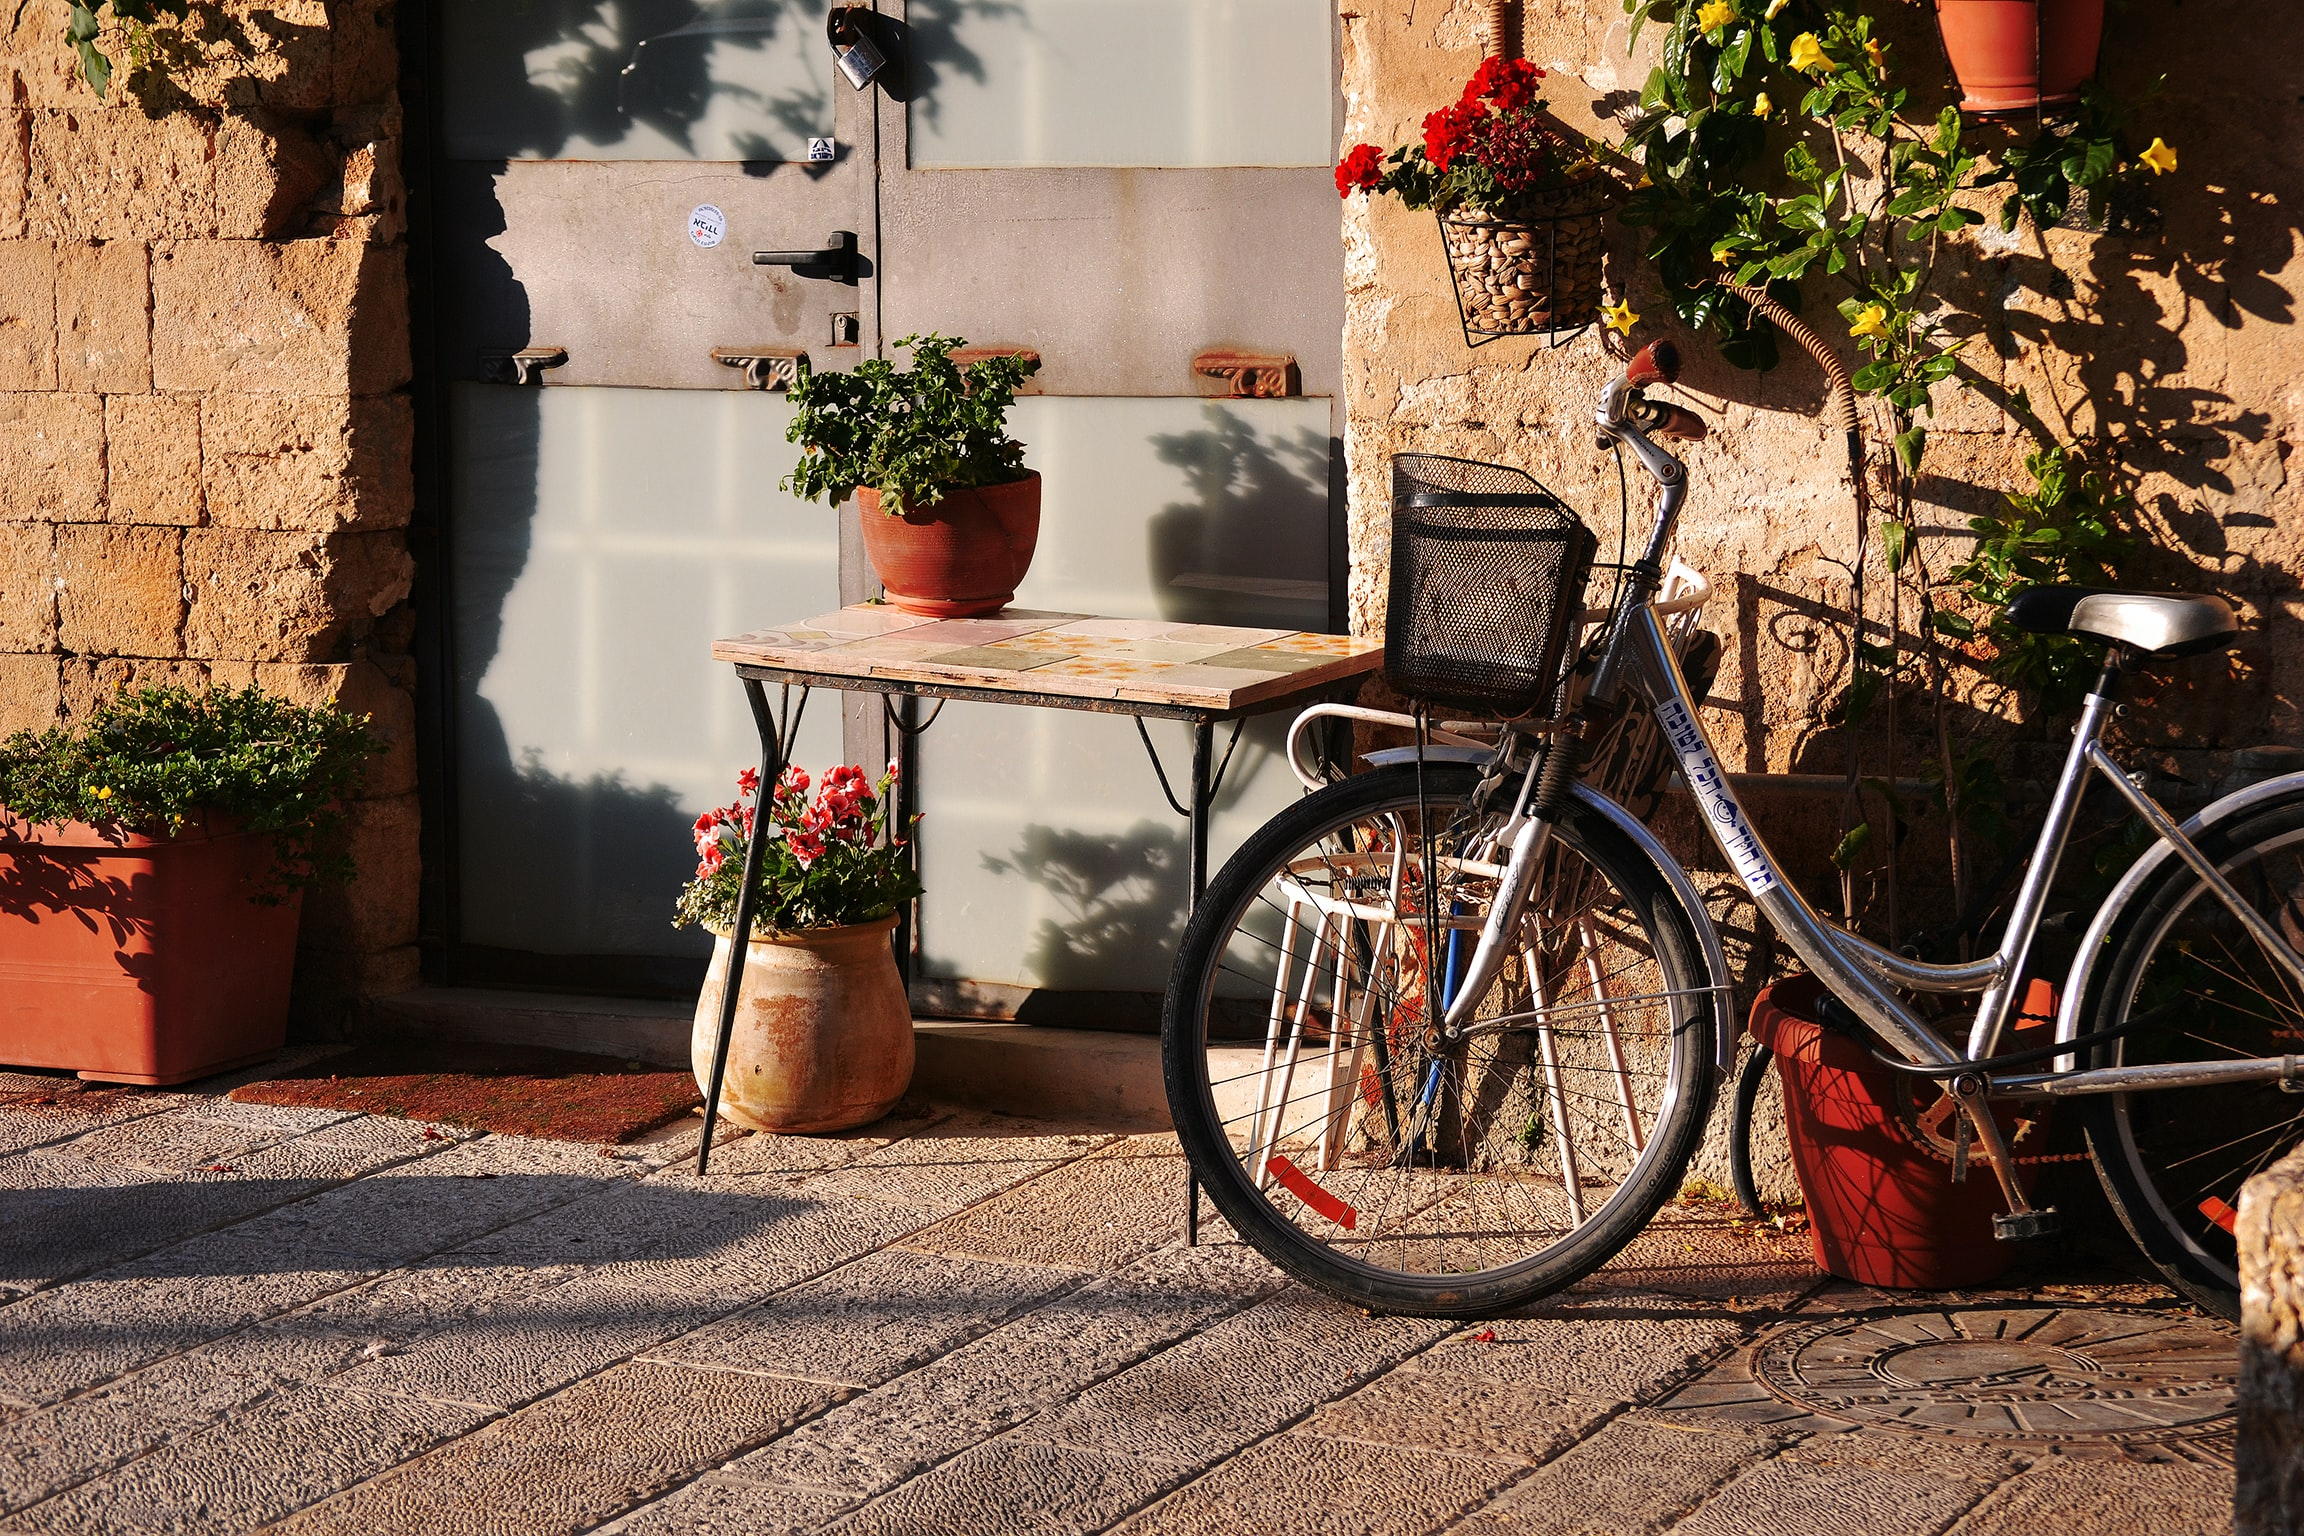 gray cruiser bike parked near table with plant on top